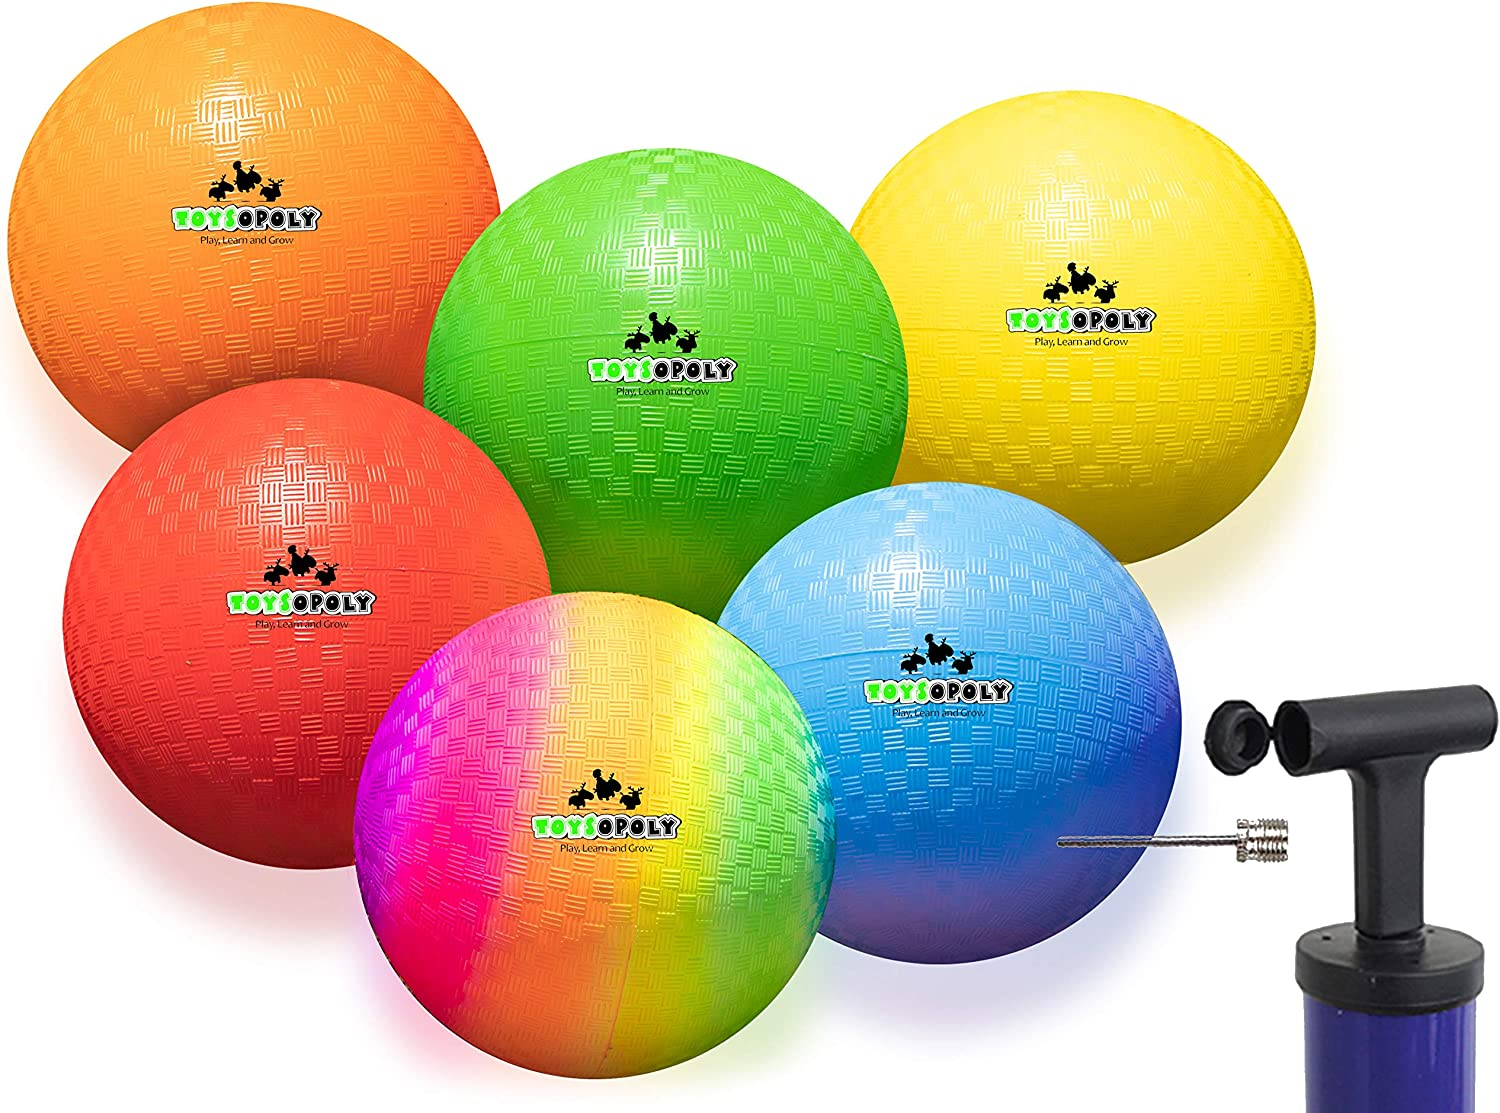 Inflatable Dodgeball - Official 7 Inch Balls + Soft Skin Rubber Give No Sting and Hurt. Best Hand Ball for Boys Girls Kids and Adults - Includes Ball Pump & Mesh Bag